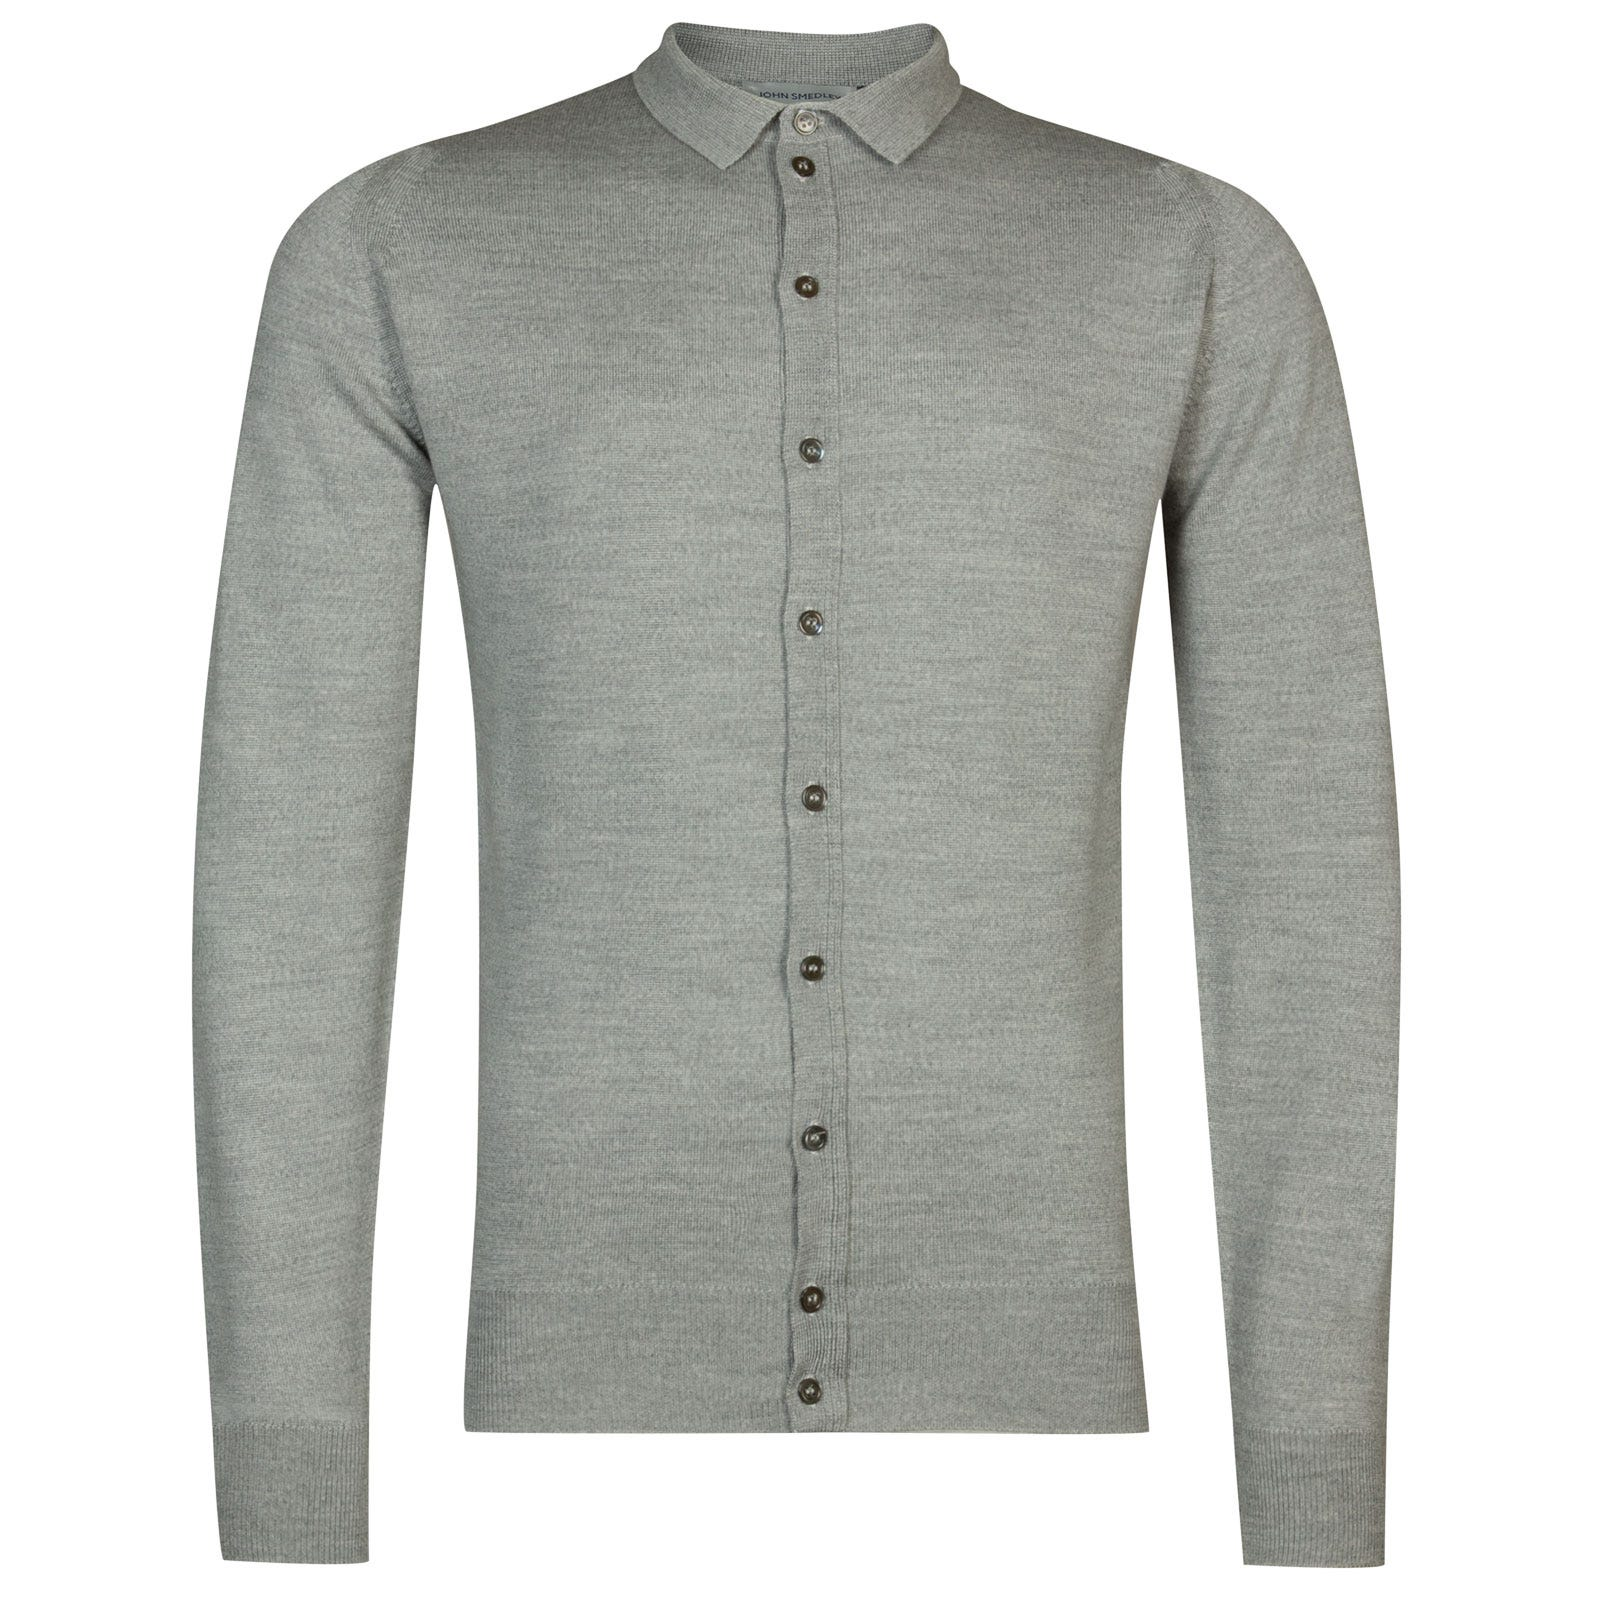 John Smedley parwish Merino Wool Shirt in Bardot Grey-XXL